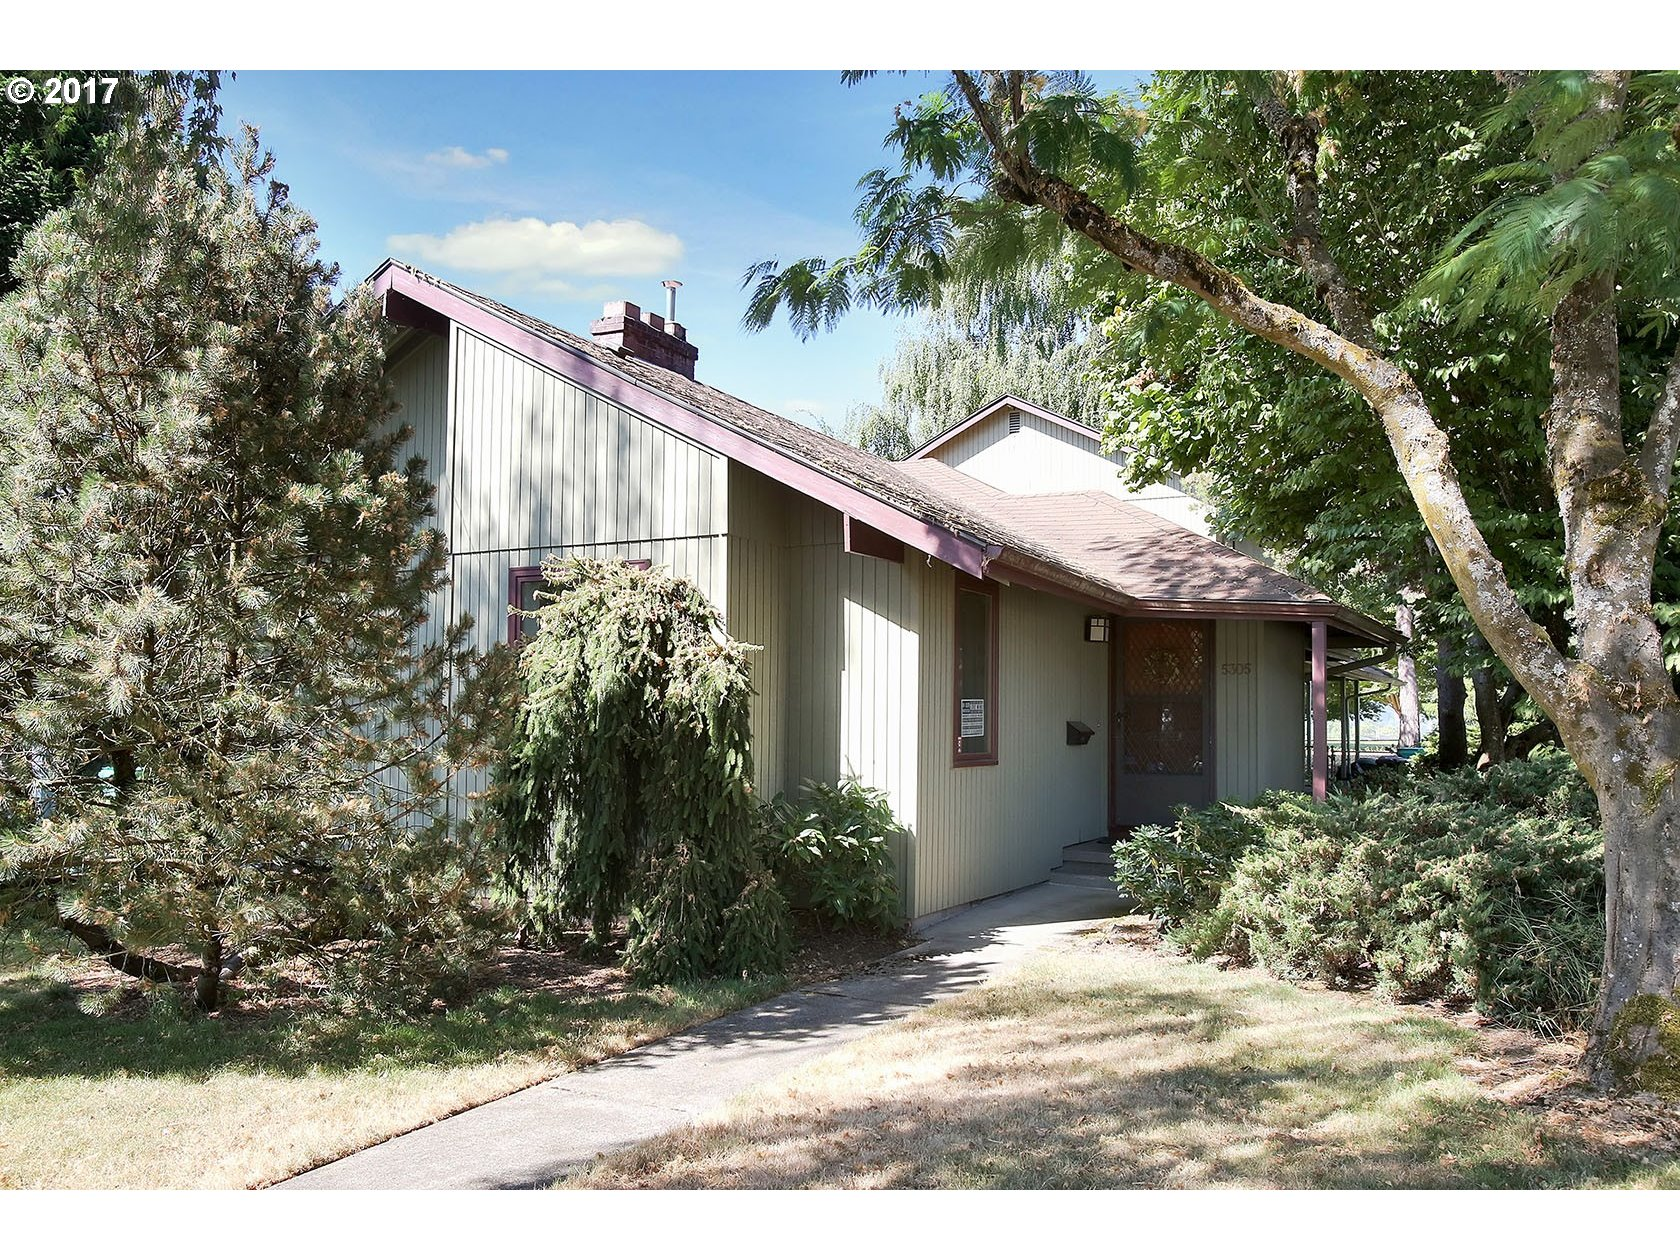 3425 sq. ft 4 bedrooms 2 bathrooms  House For Sale, Portland, OR